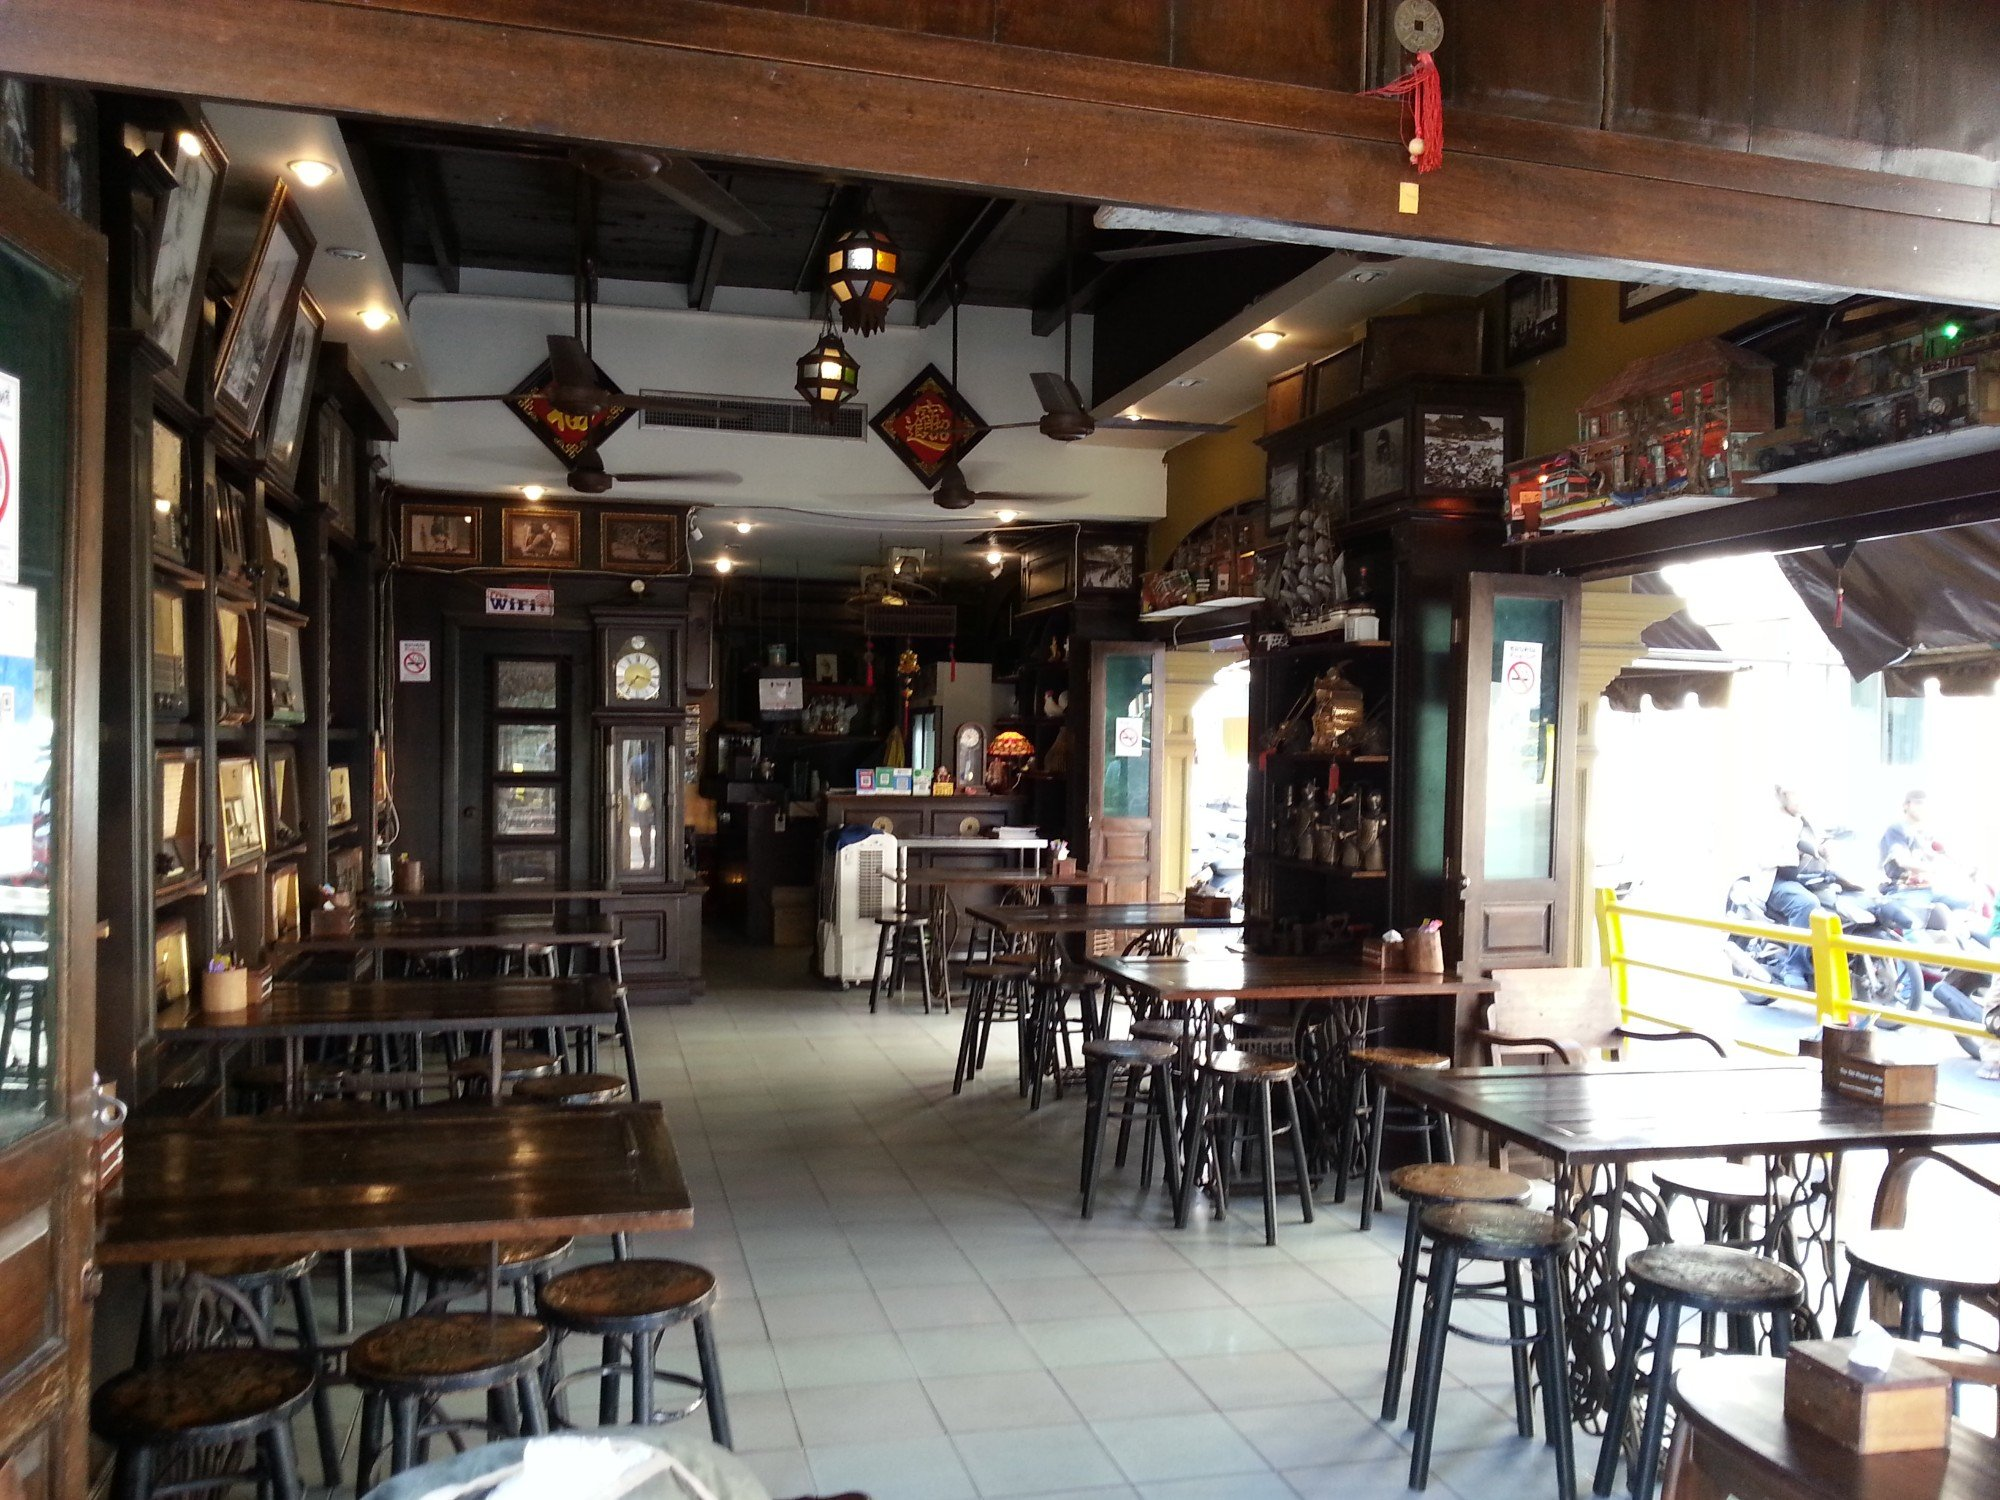 The Old Phuket Coffee Station on Thalang Road